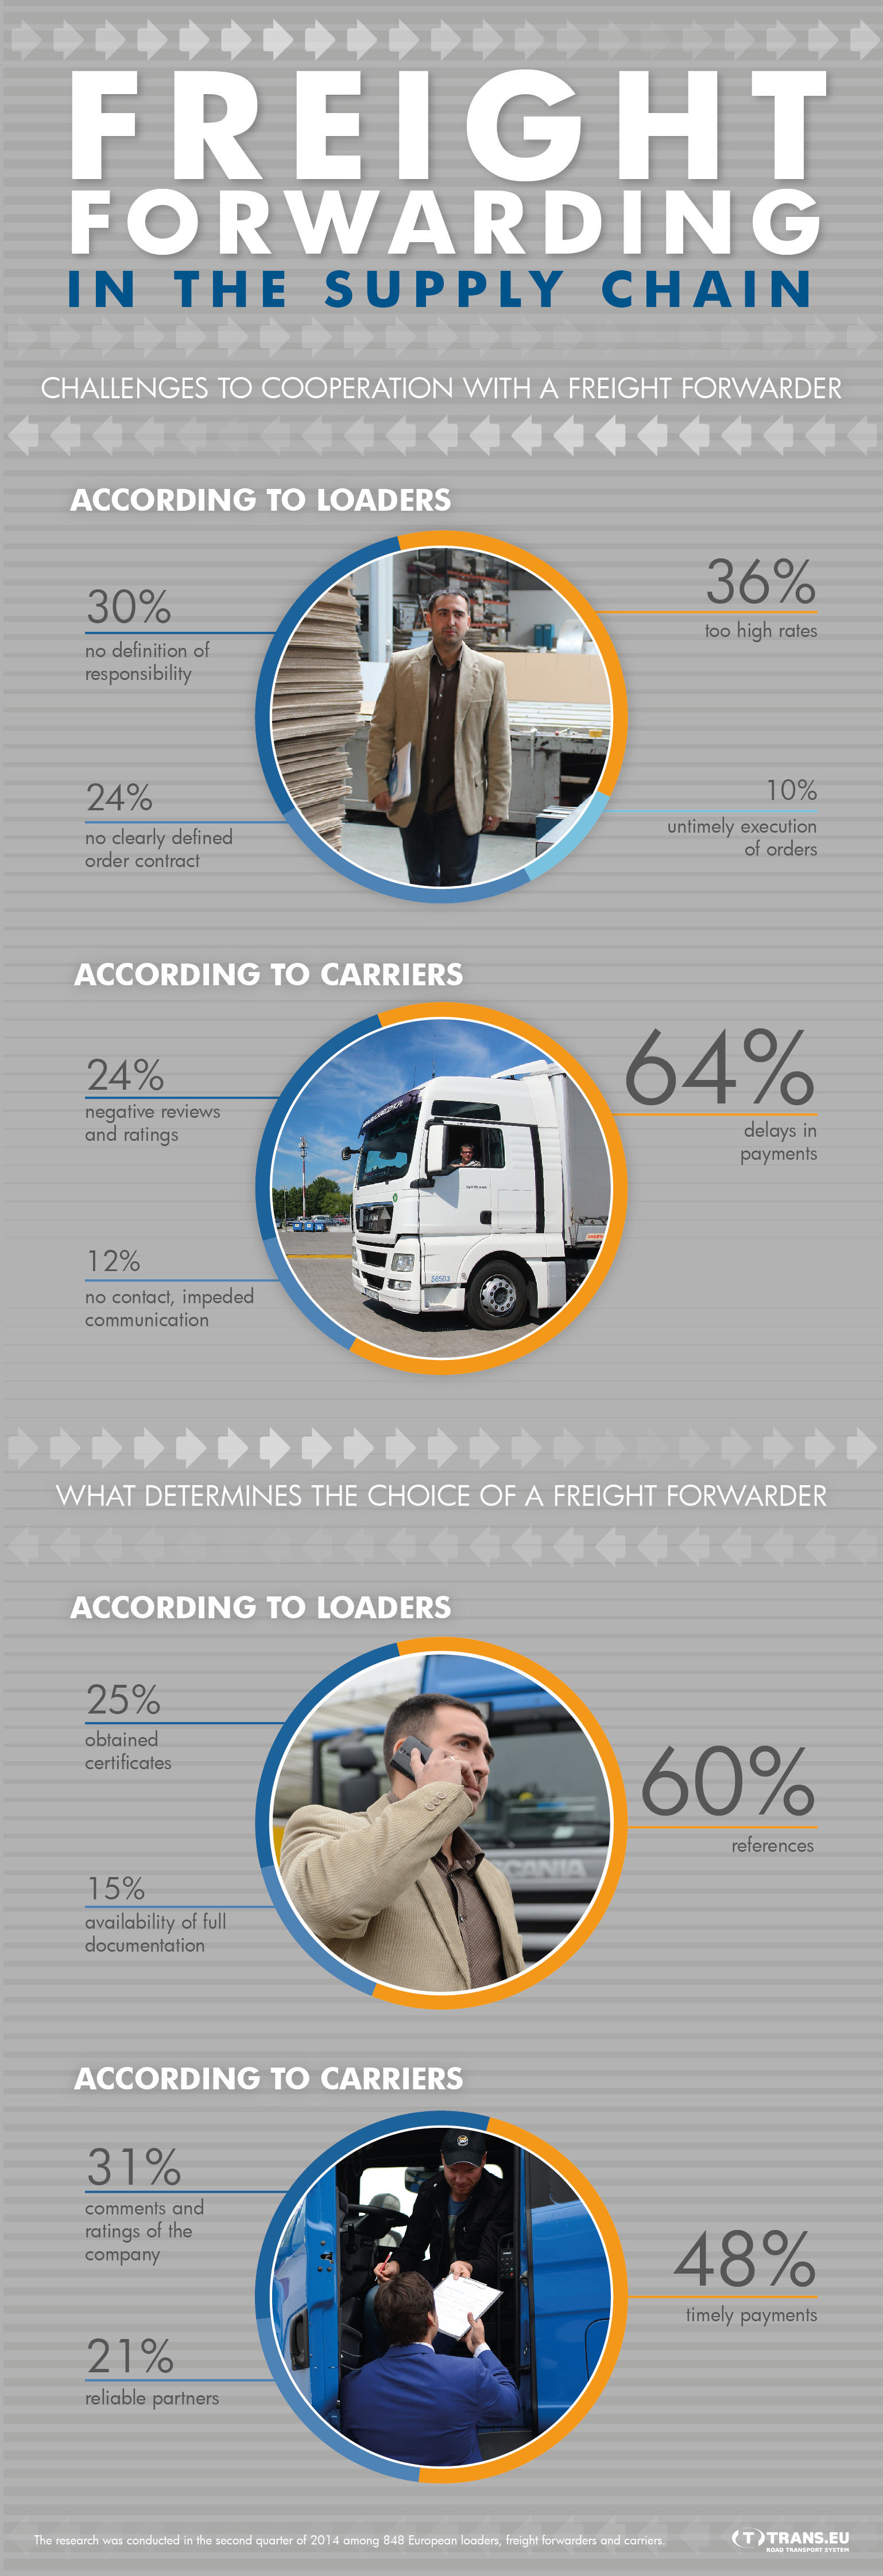 What determines the choice of a freight forwarder?